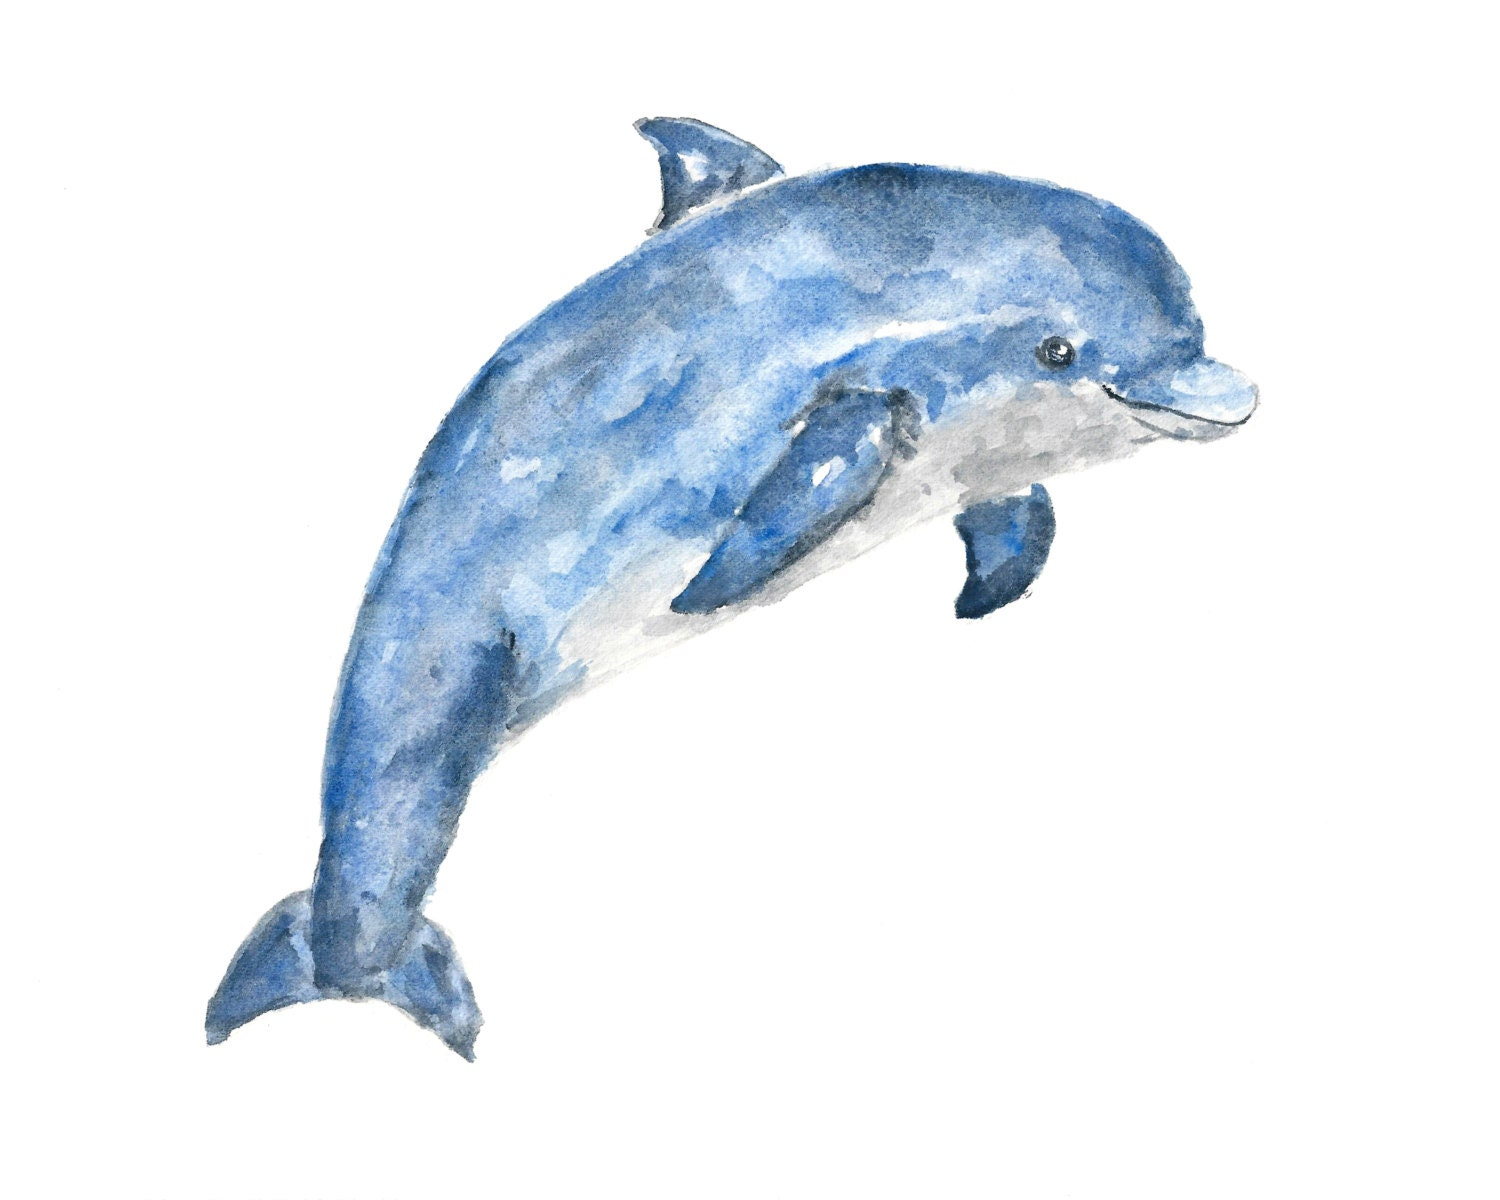 Uncategorized Dolphin Images To Print animal art watercolor animals dolphin beach